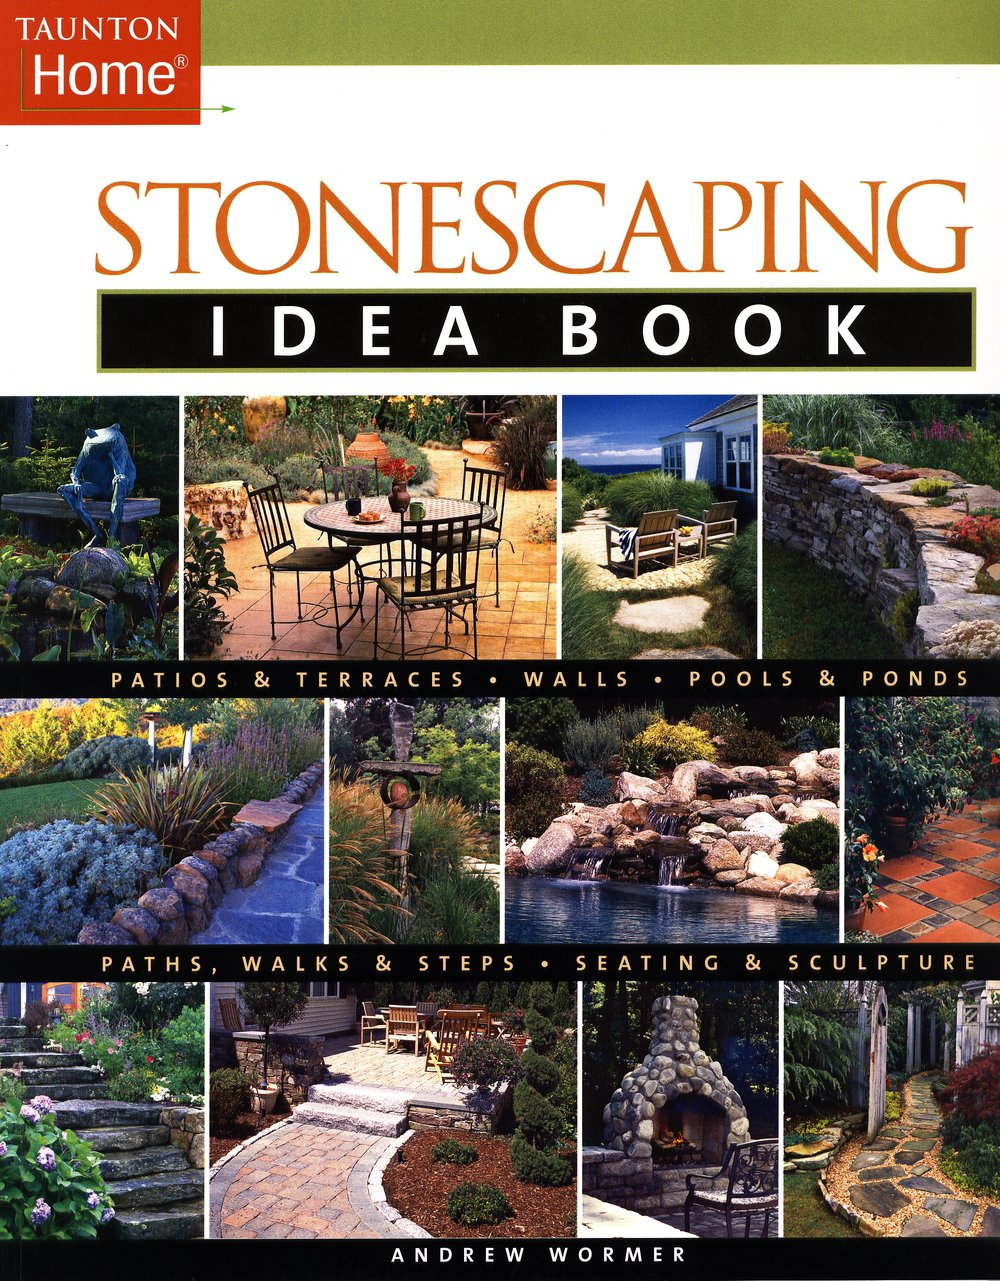 Stonescaping Idea Book_Page_1.jpg